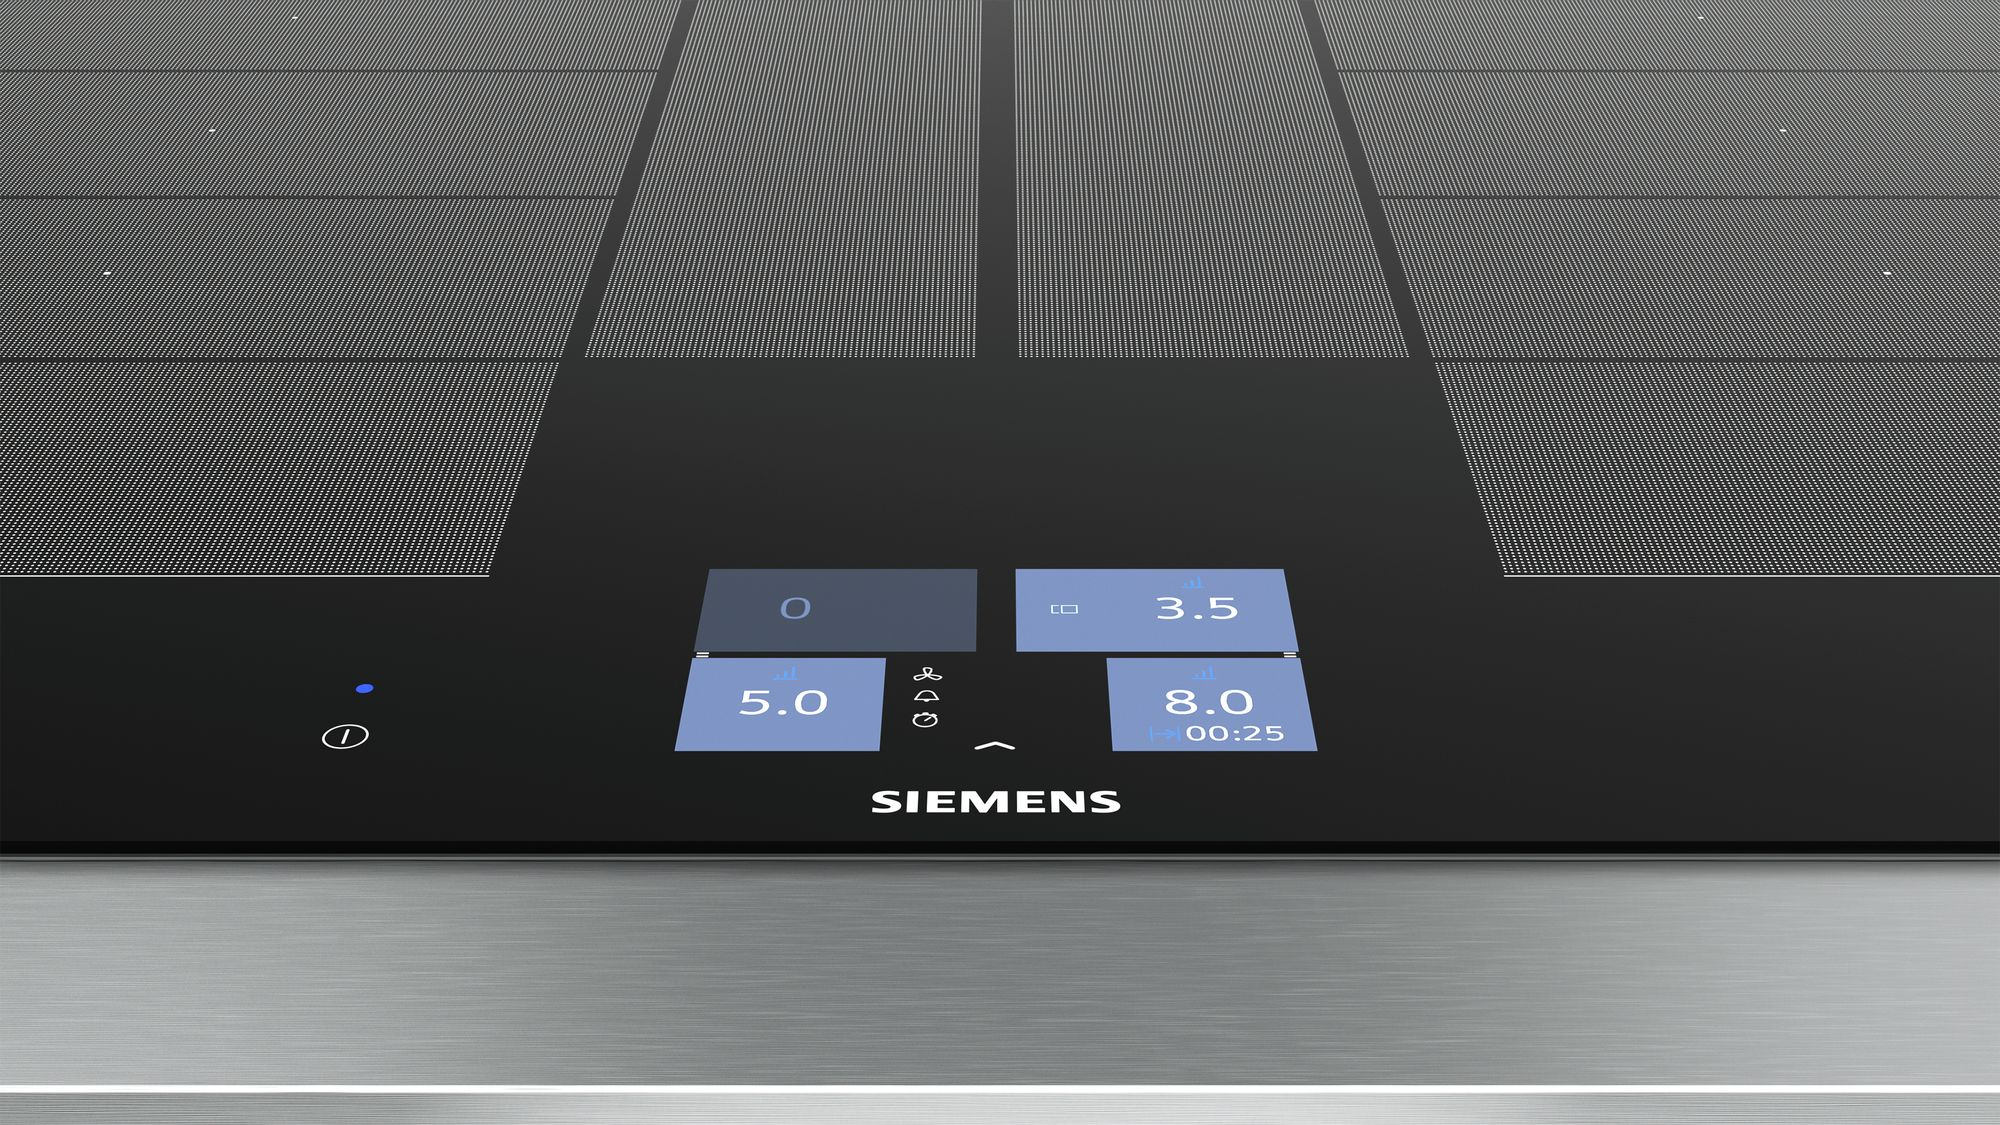 80cm Induction Cooktop Siemens Iq700 80 Cm Induction Cooktop Product Id Ex875kyw1e